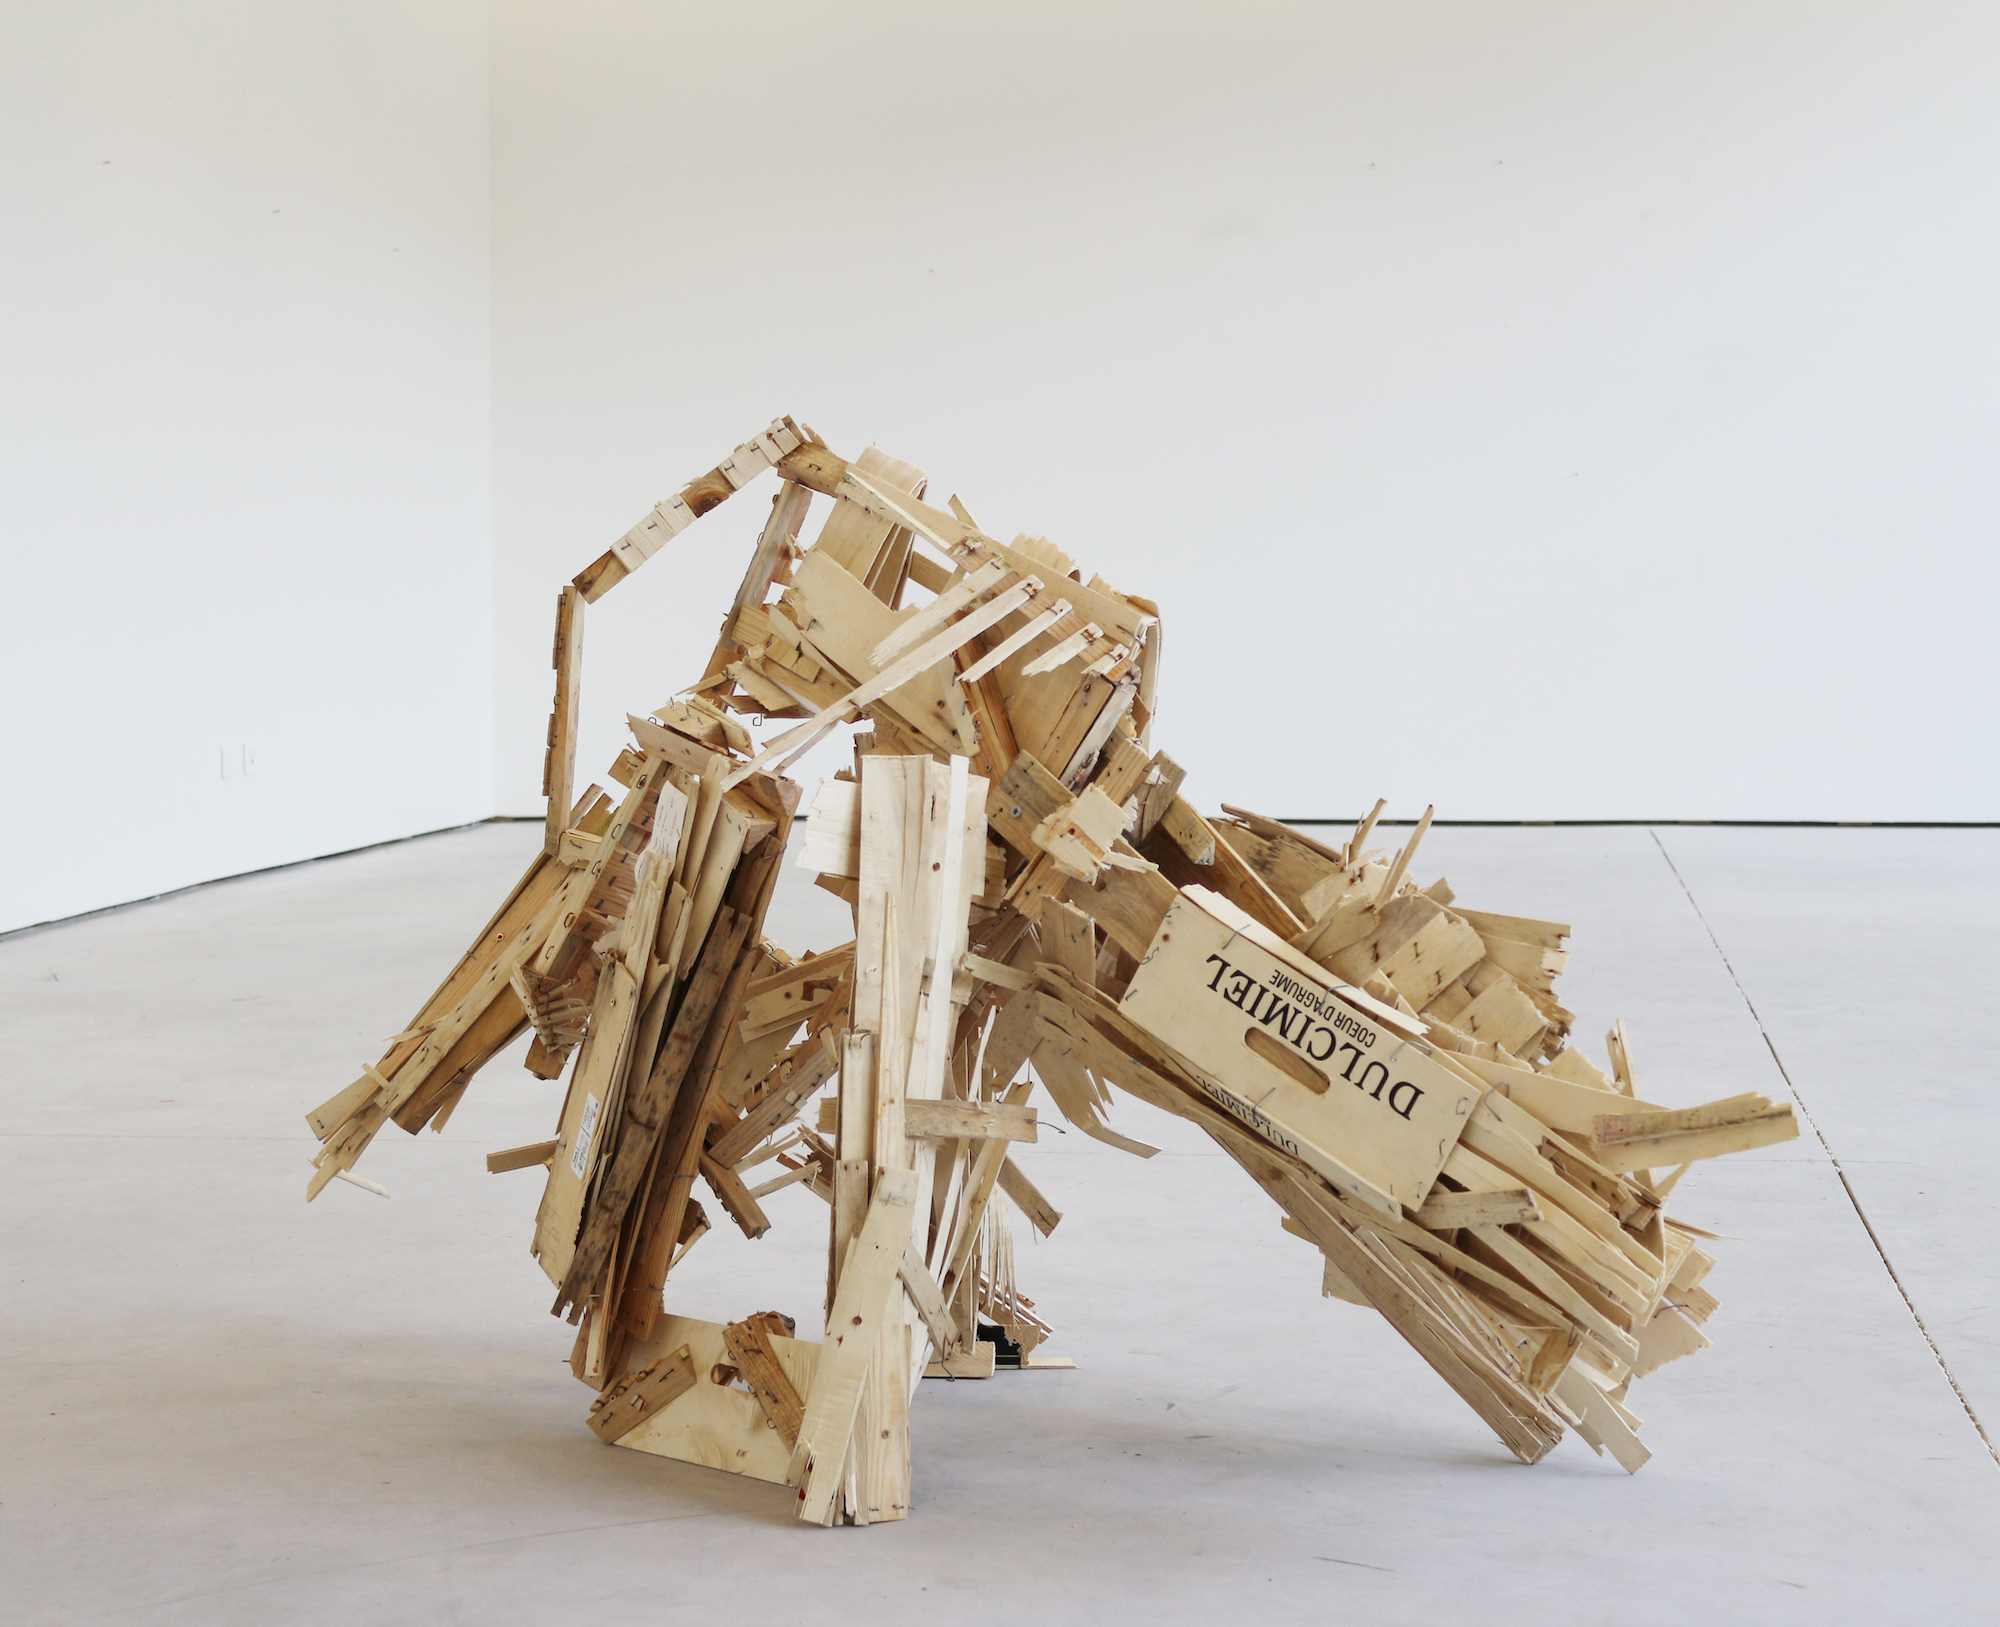 Felix Becker, untitled (La bete), 2020, wood, 145 x 90 x 55 cm